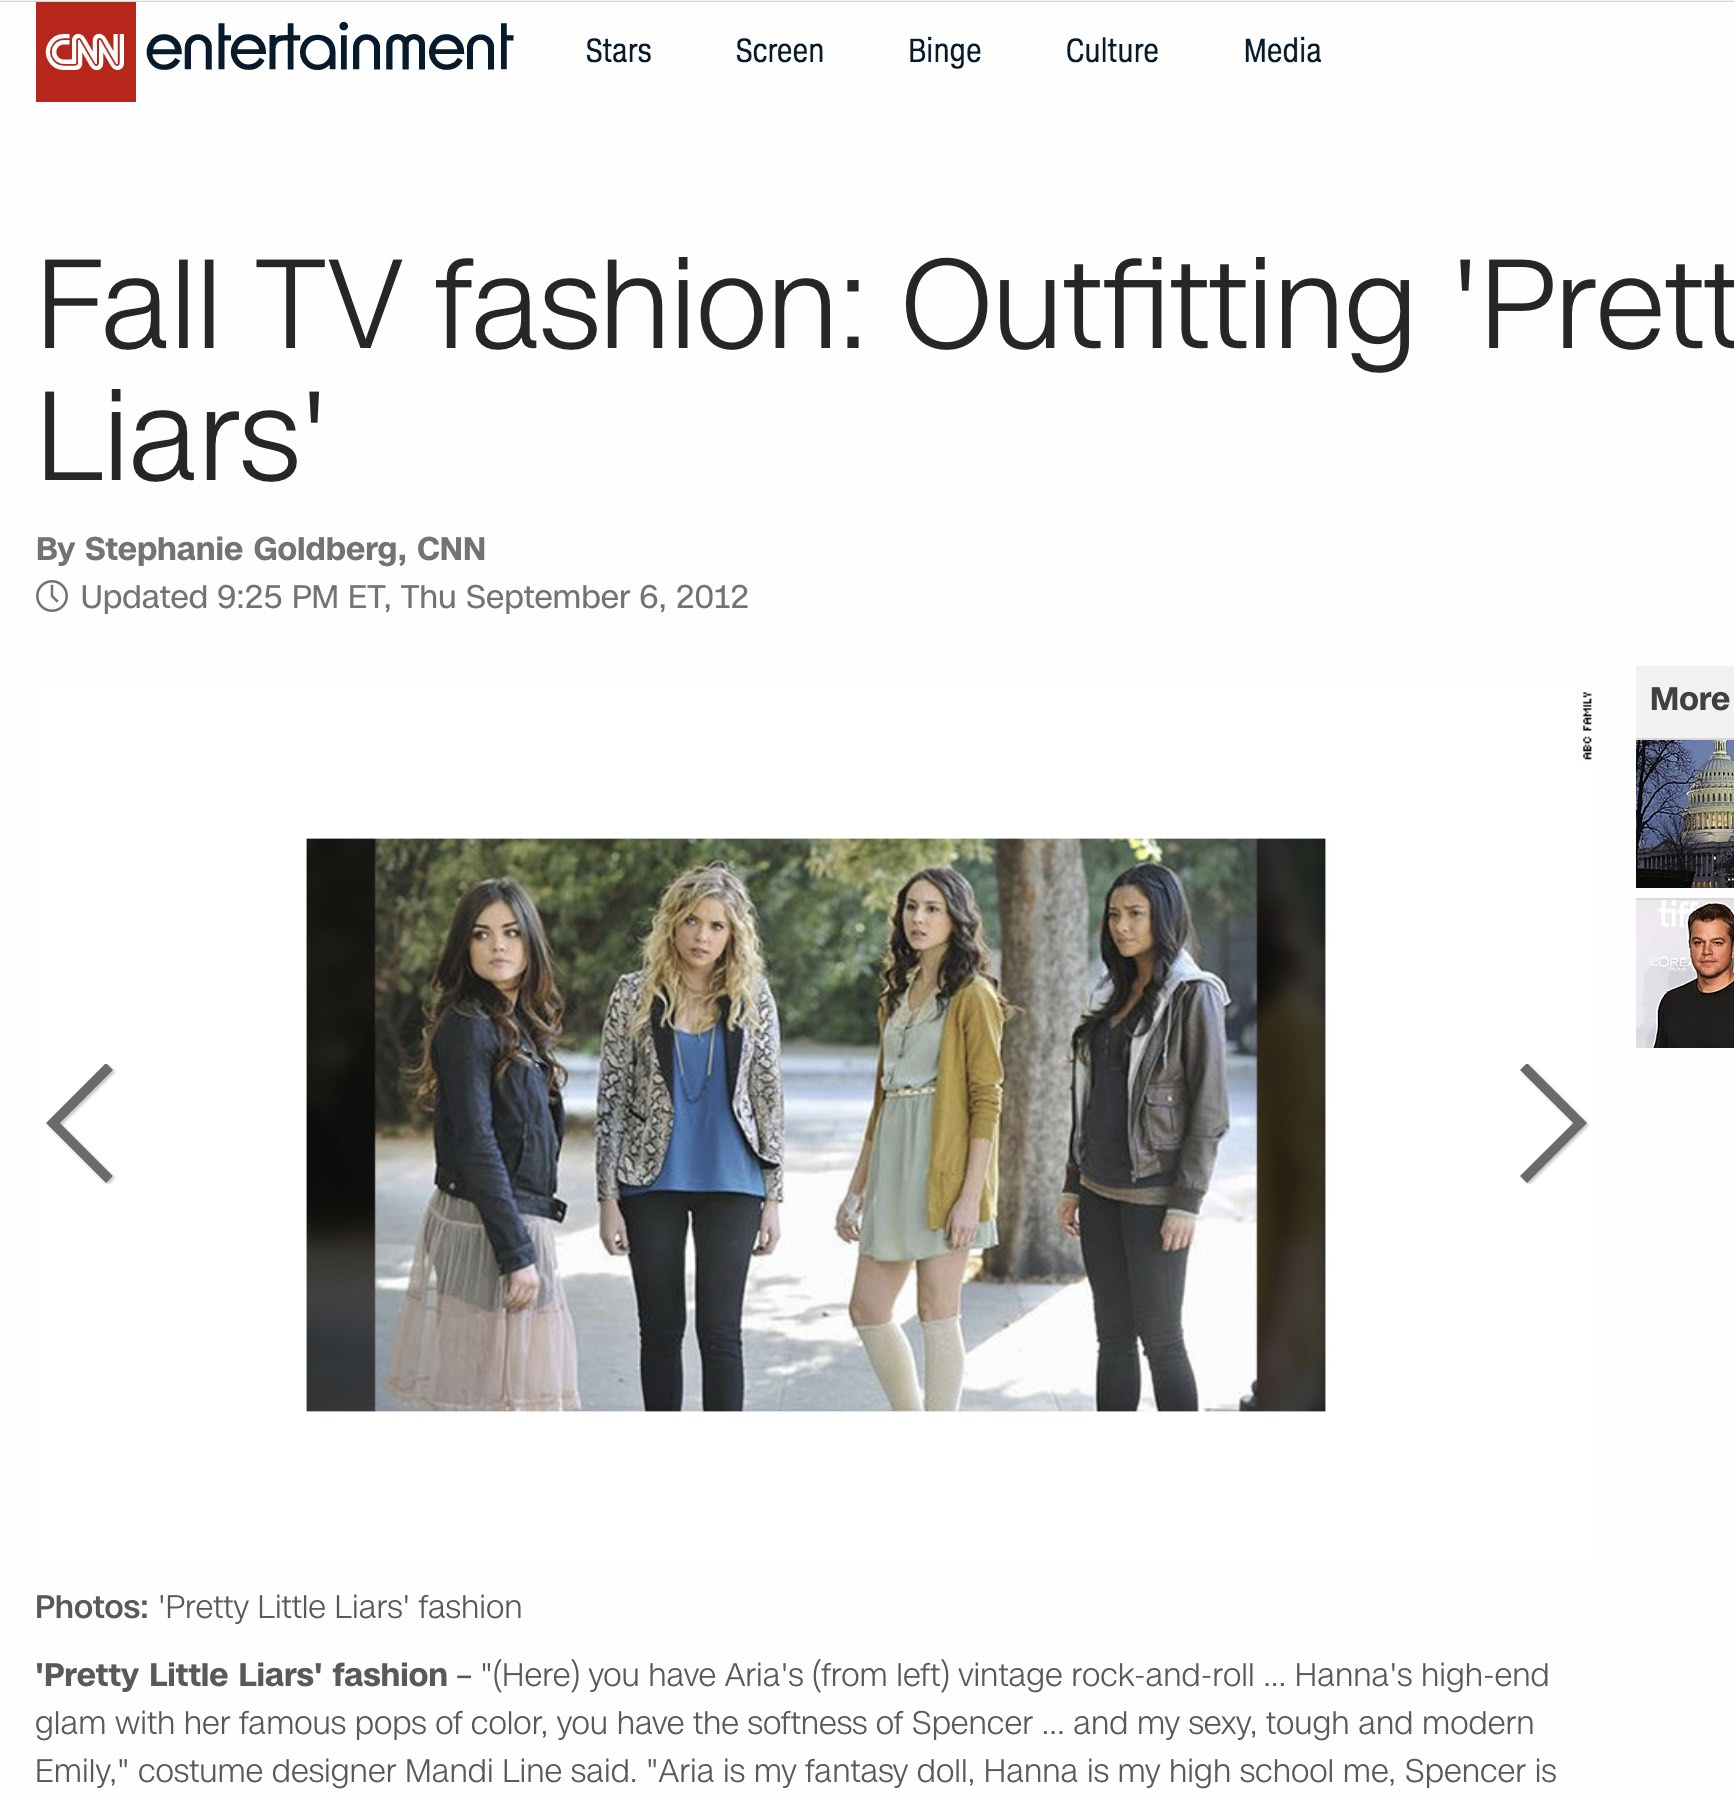 CNN Entertainment  -  Fall TV fashion: Outfitting 'Pretty Little Liars'